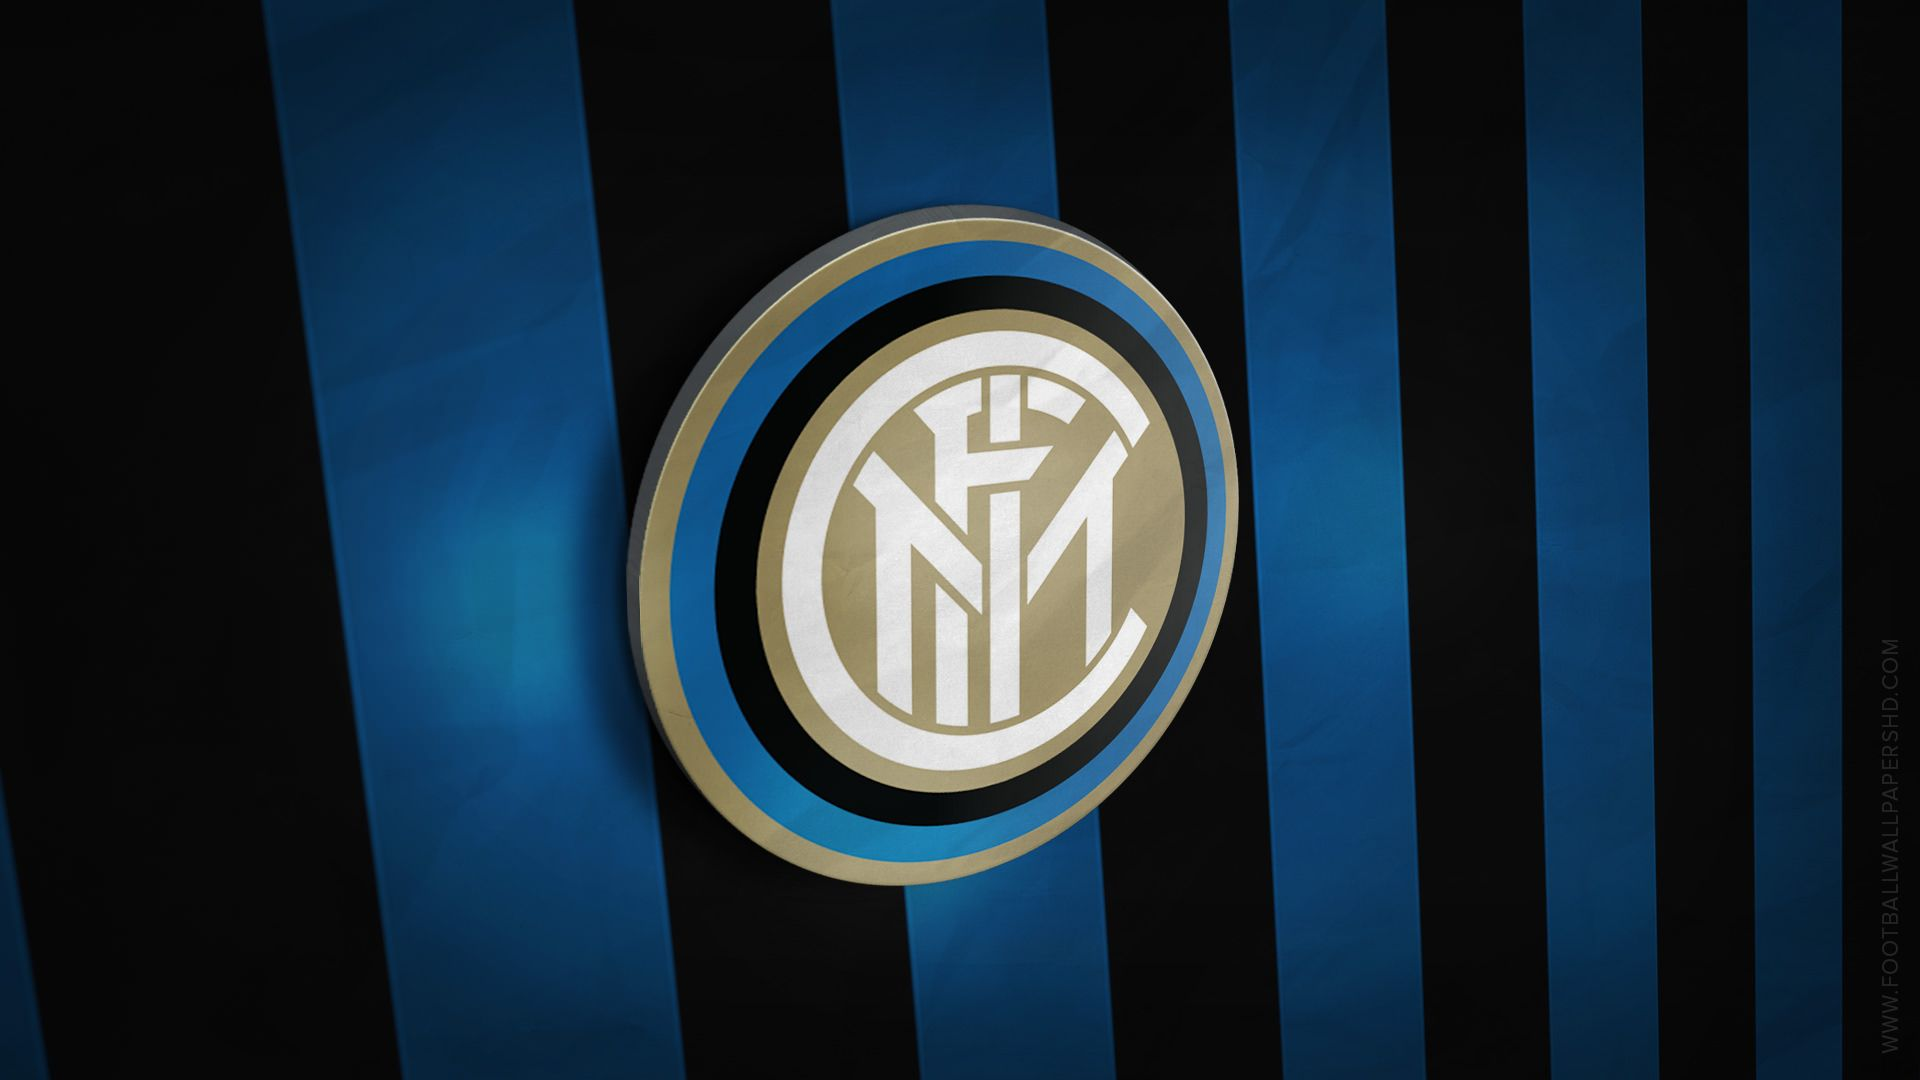 sun inter milan logo - photo #7